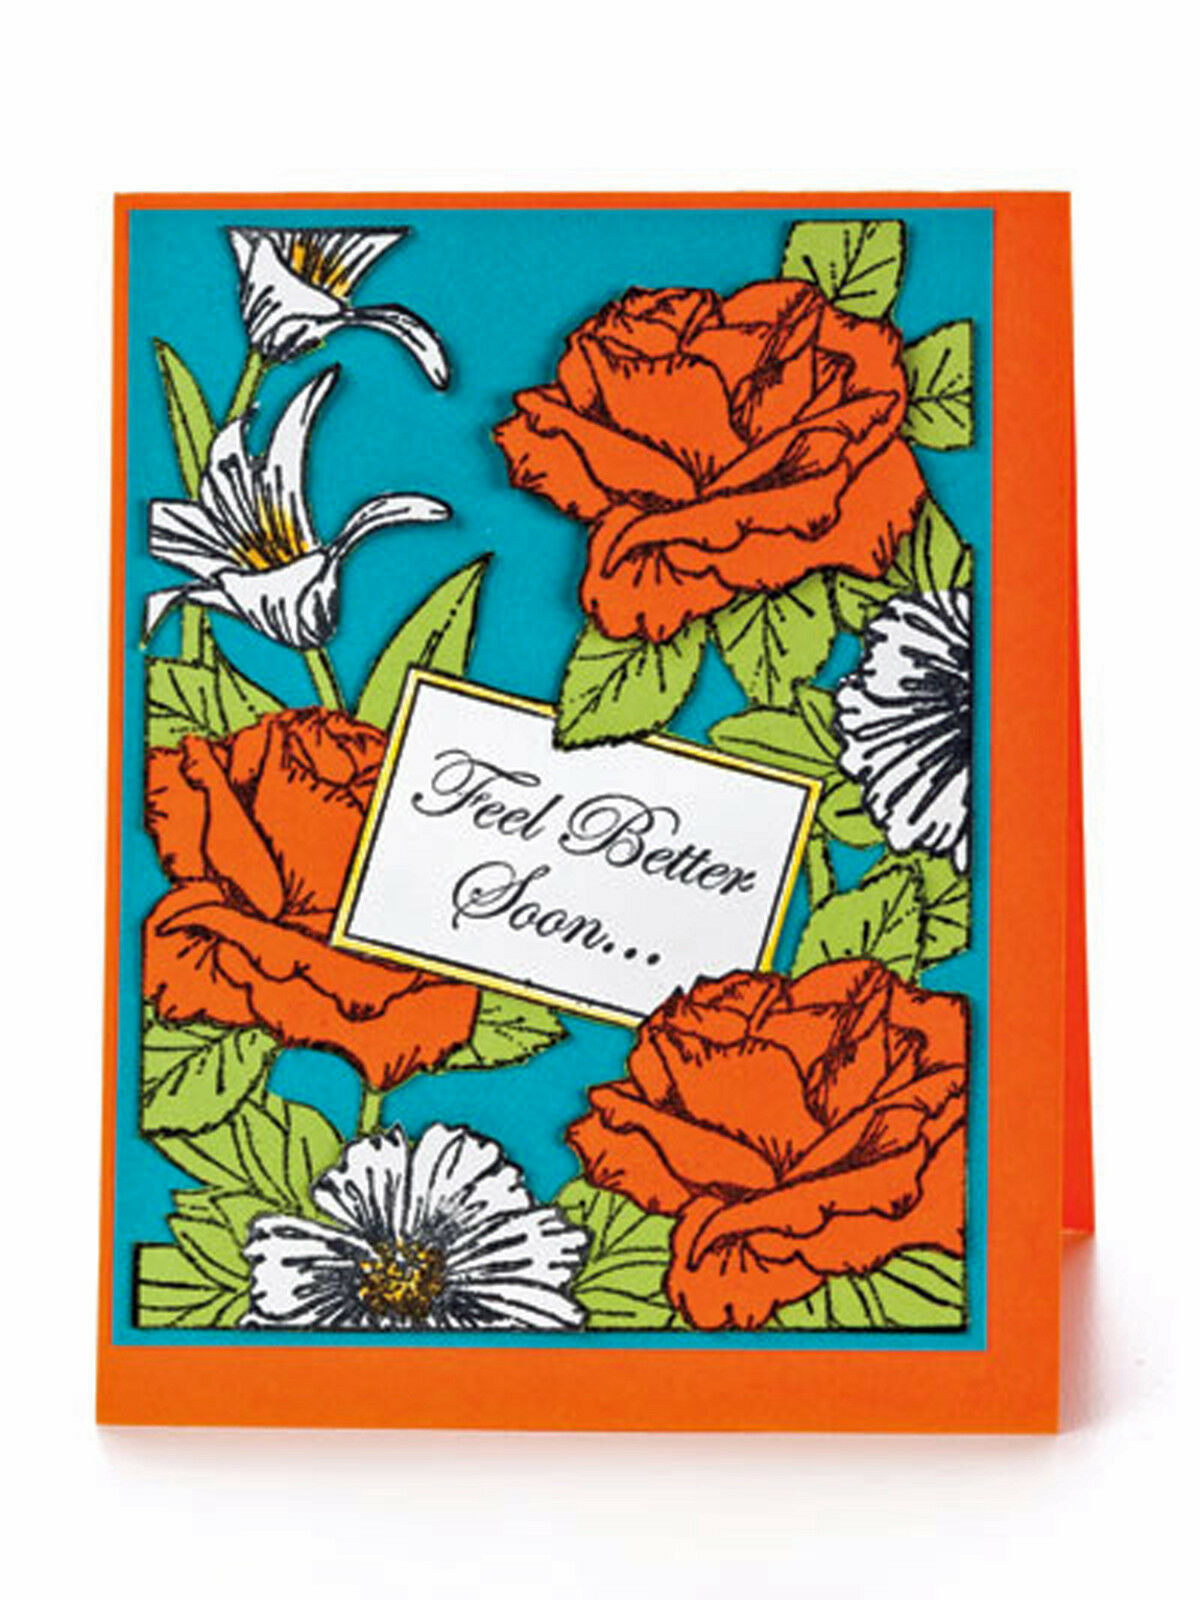 Fabulous Stamped Frames Book Creative Greeting Card Design